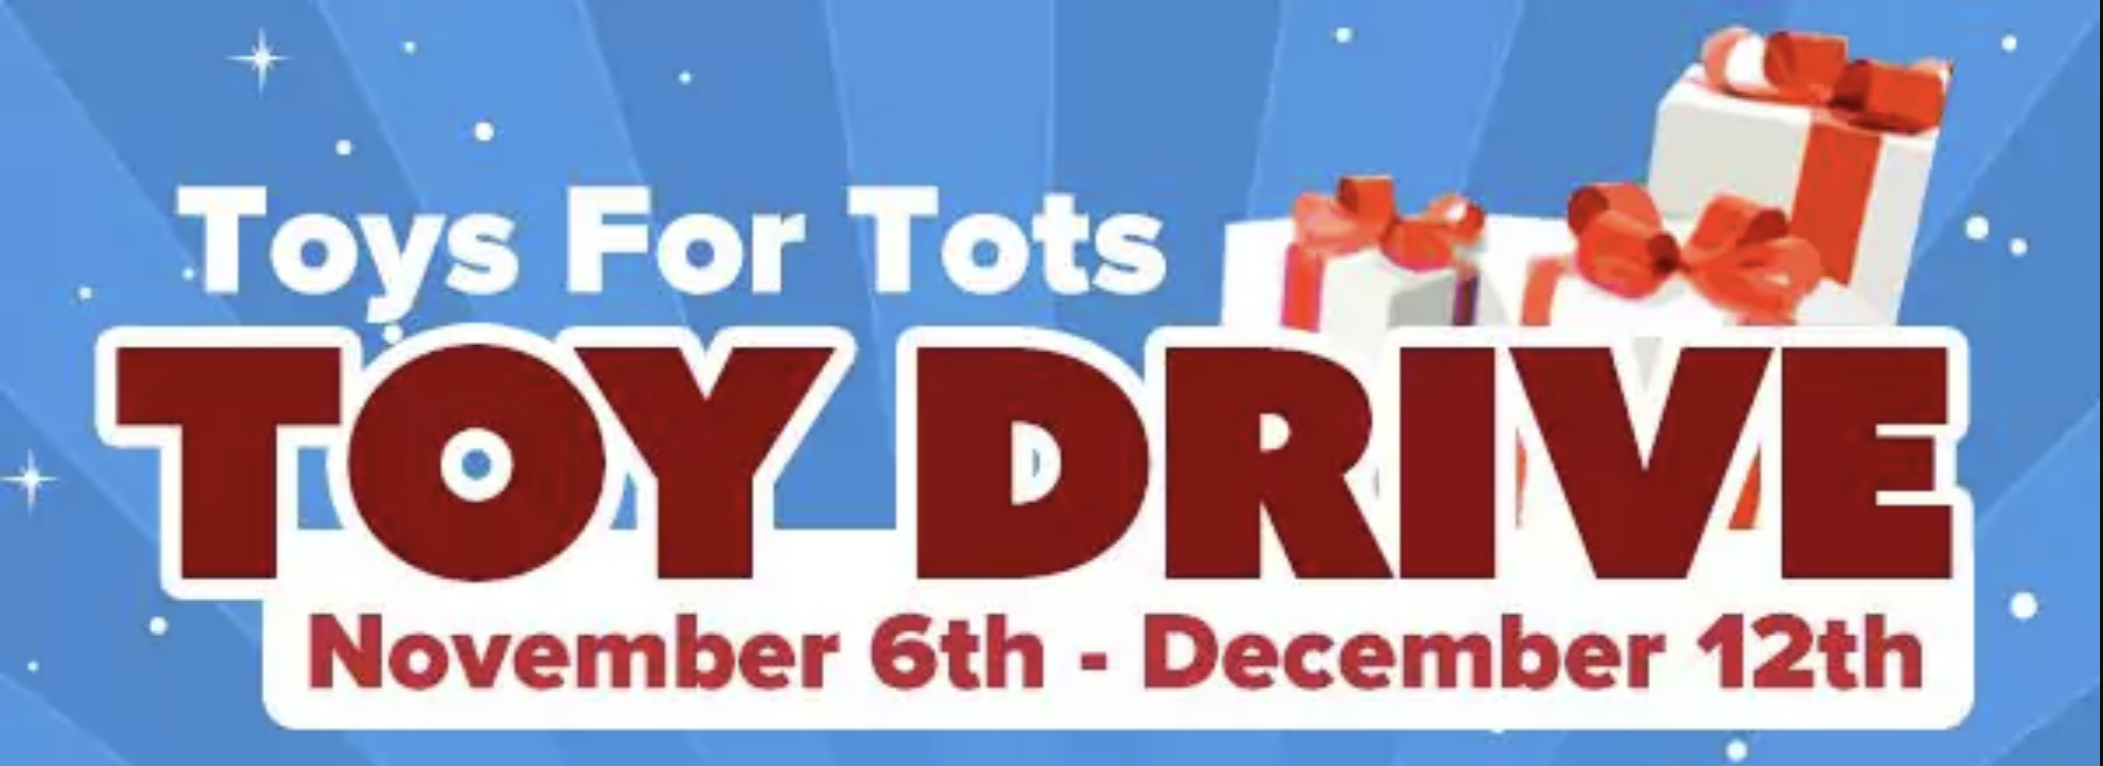 Toys for tots ocean honda of weymouth for Ocean honda weymouth